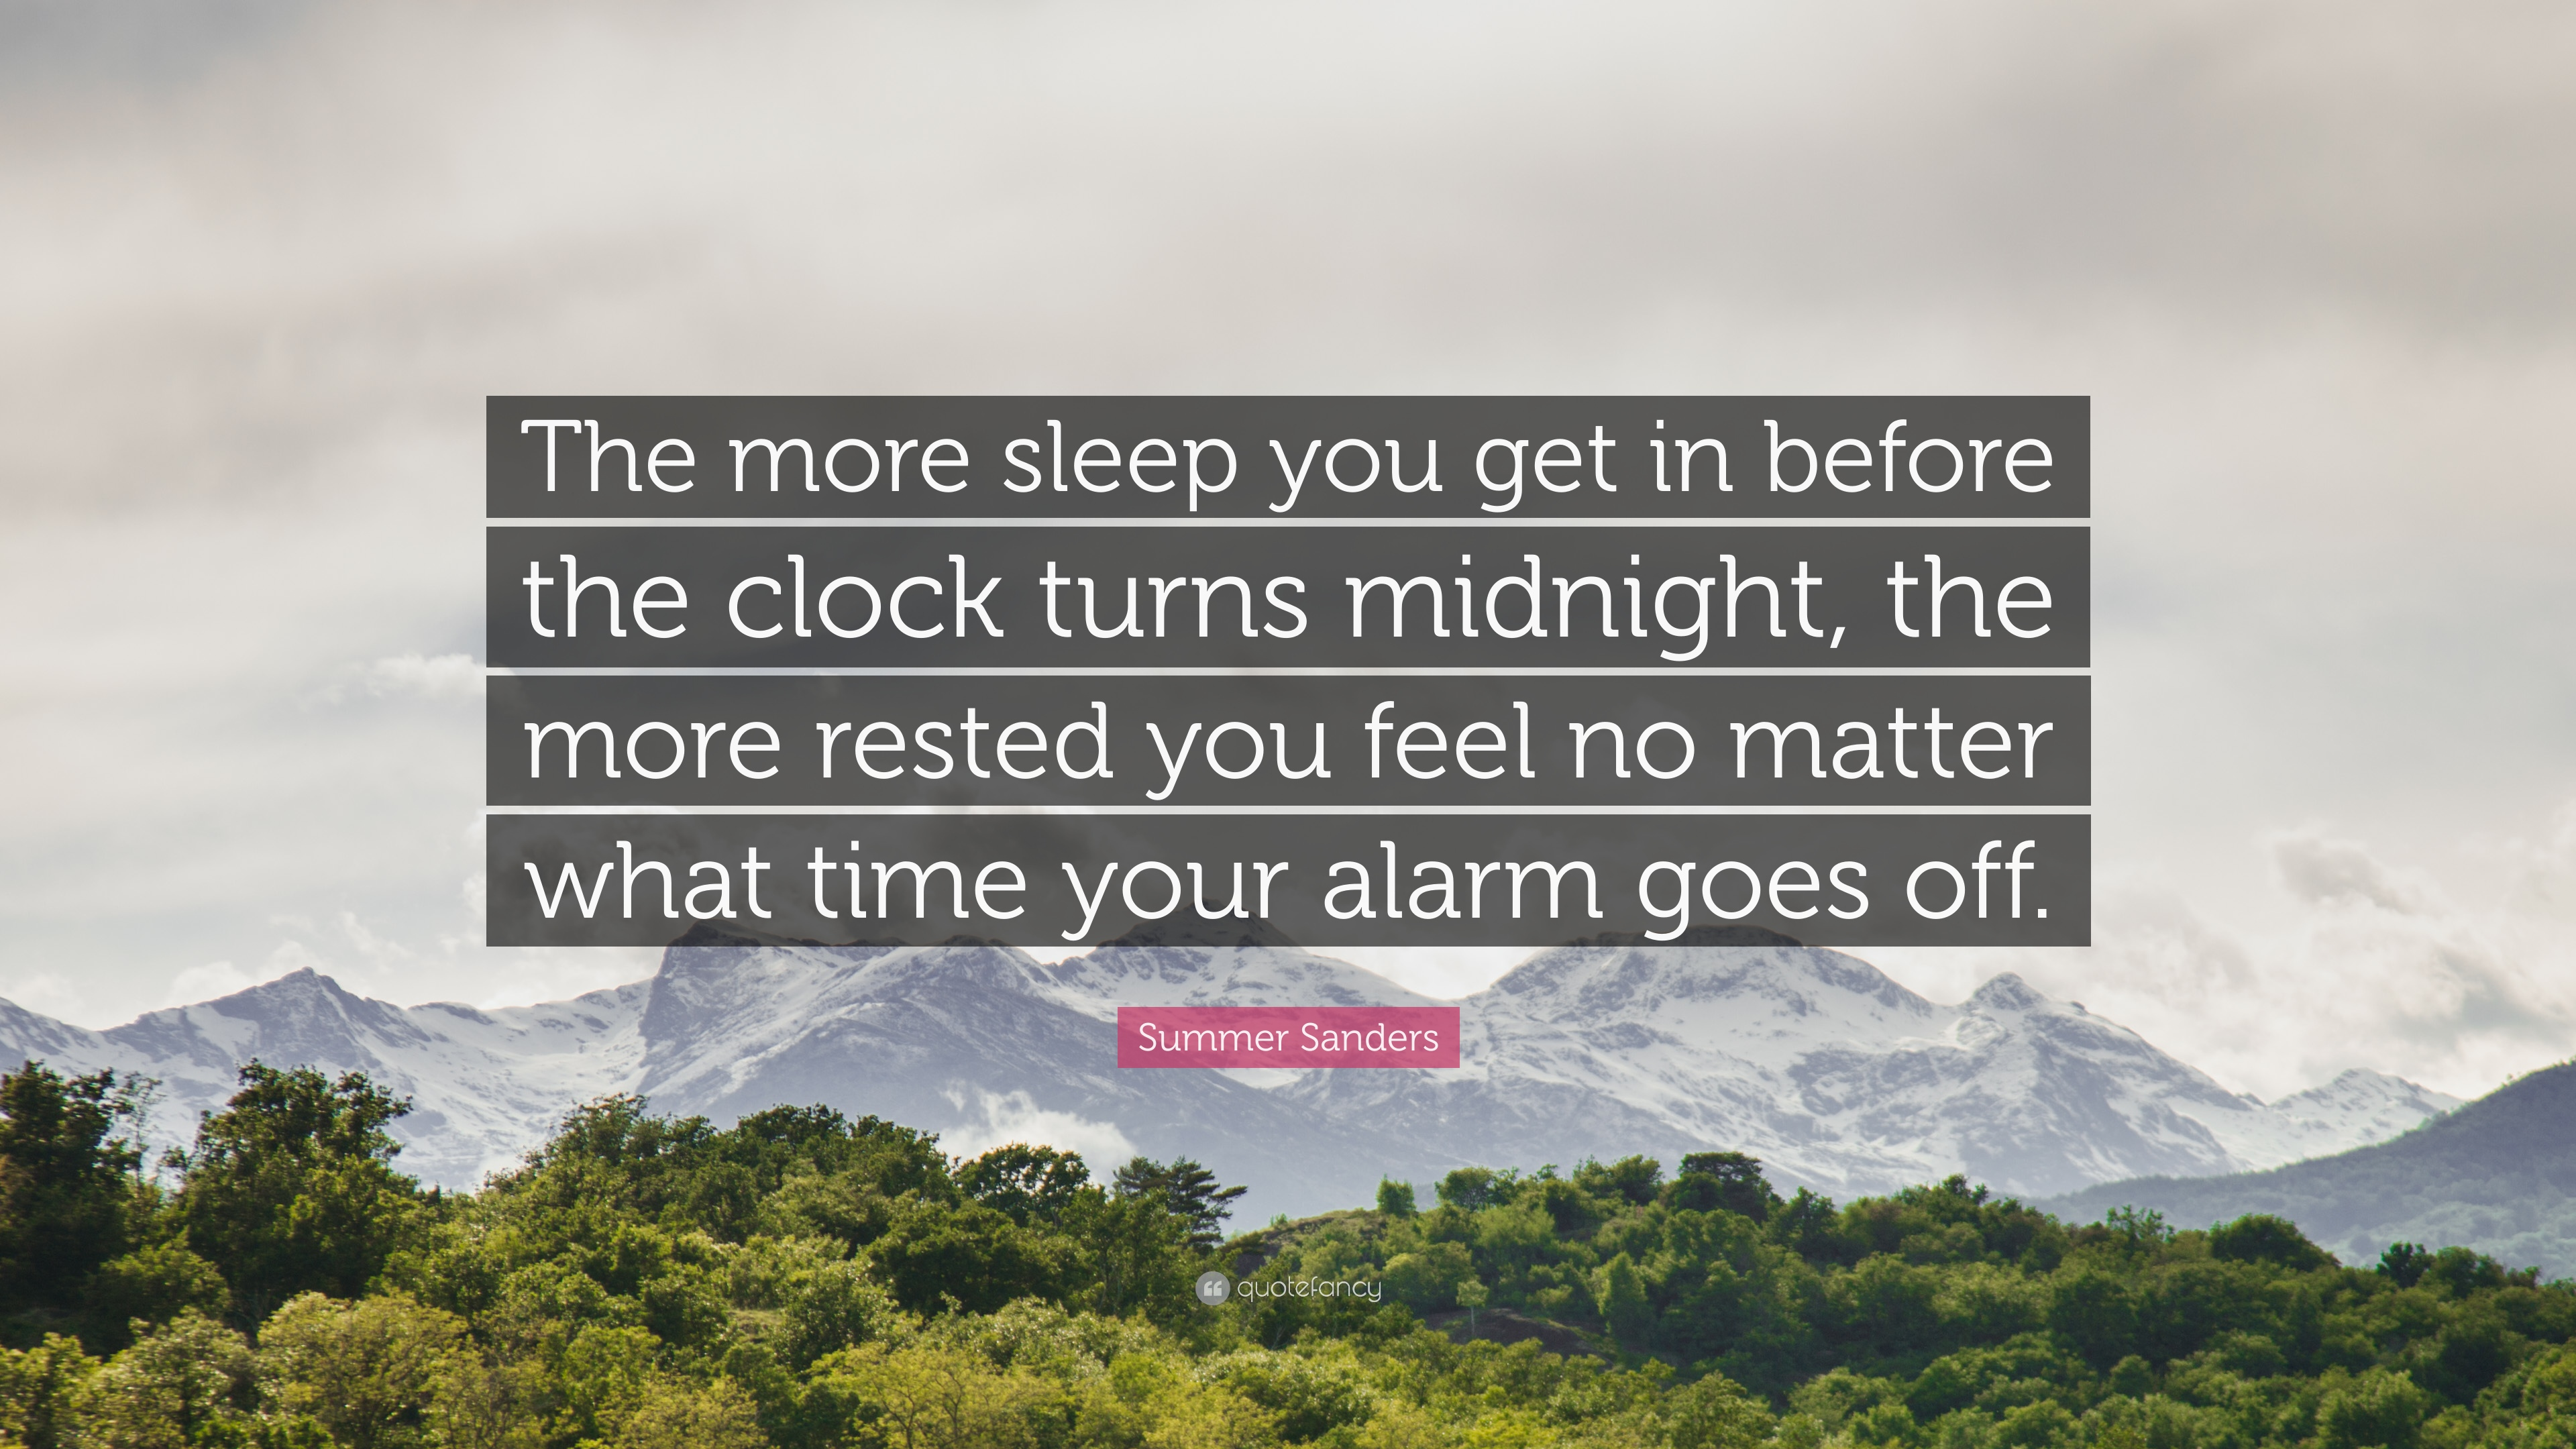 summer sanders quote the more sleep you get in before the clock